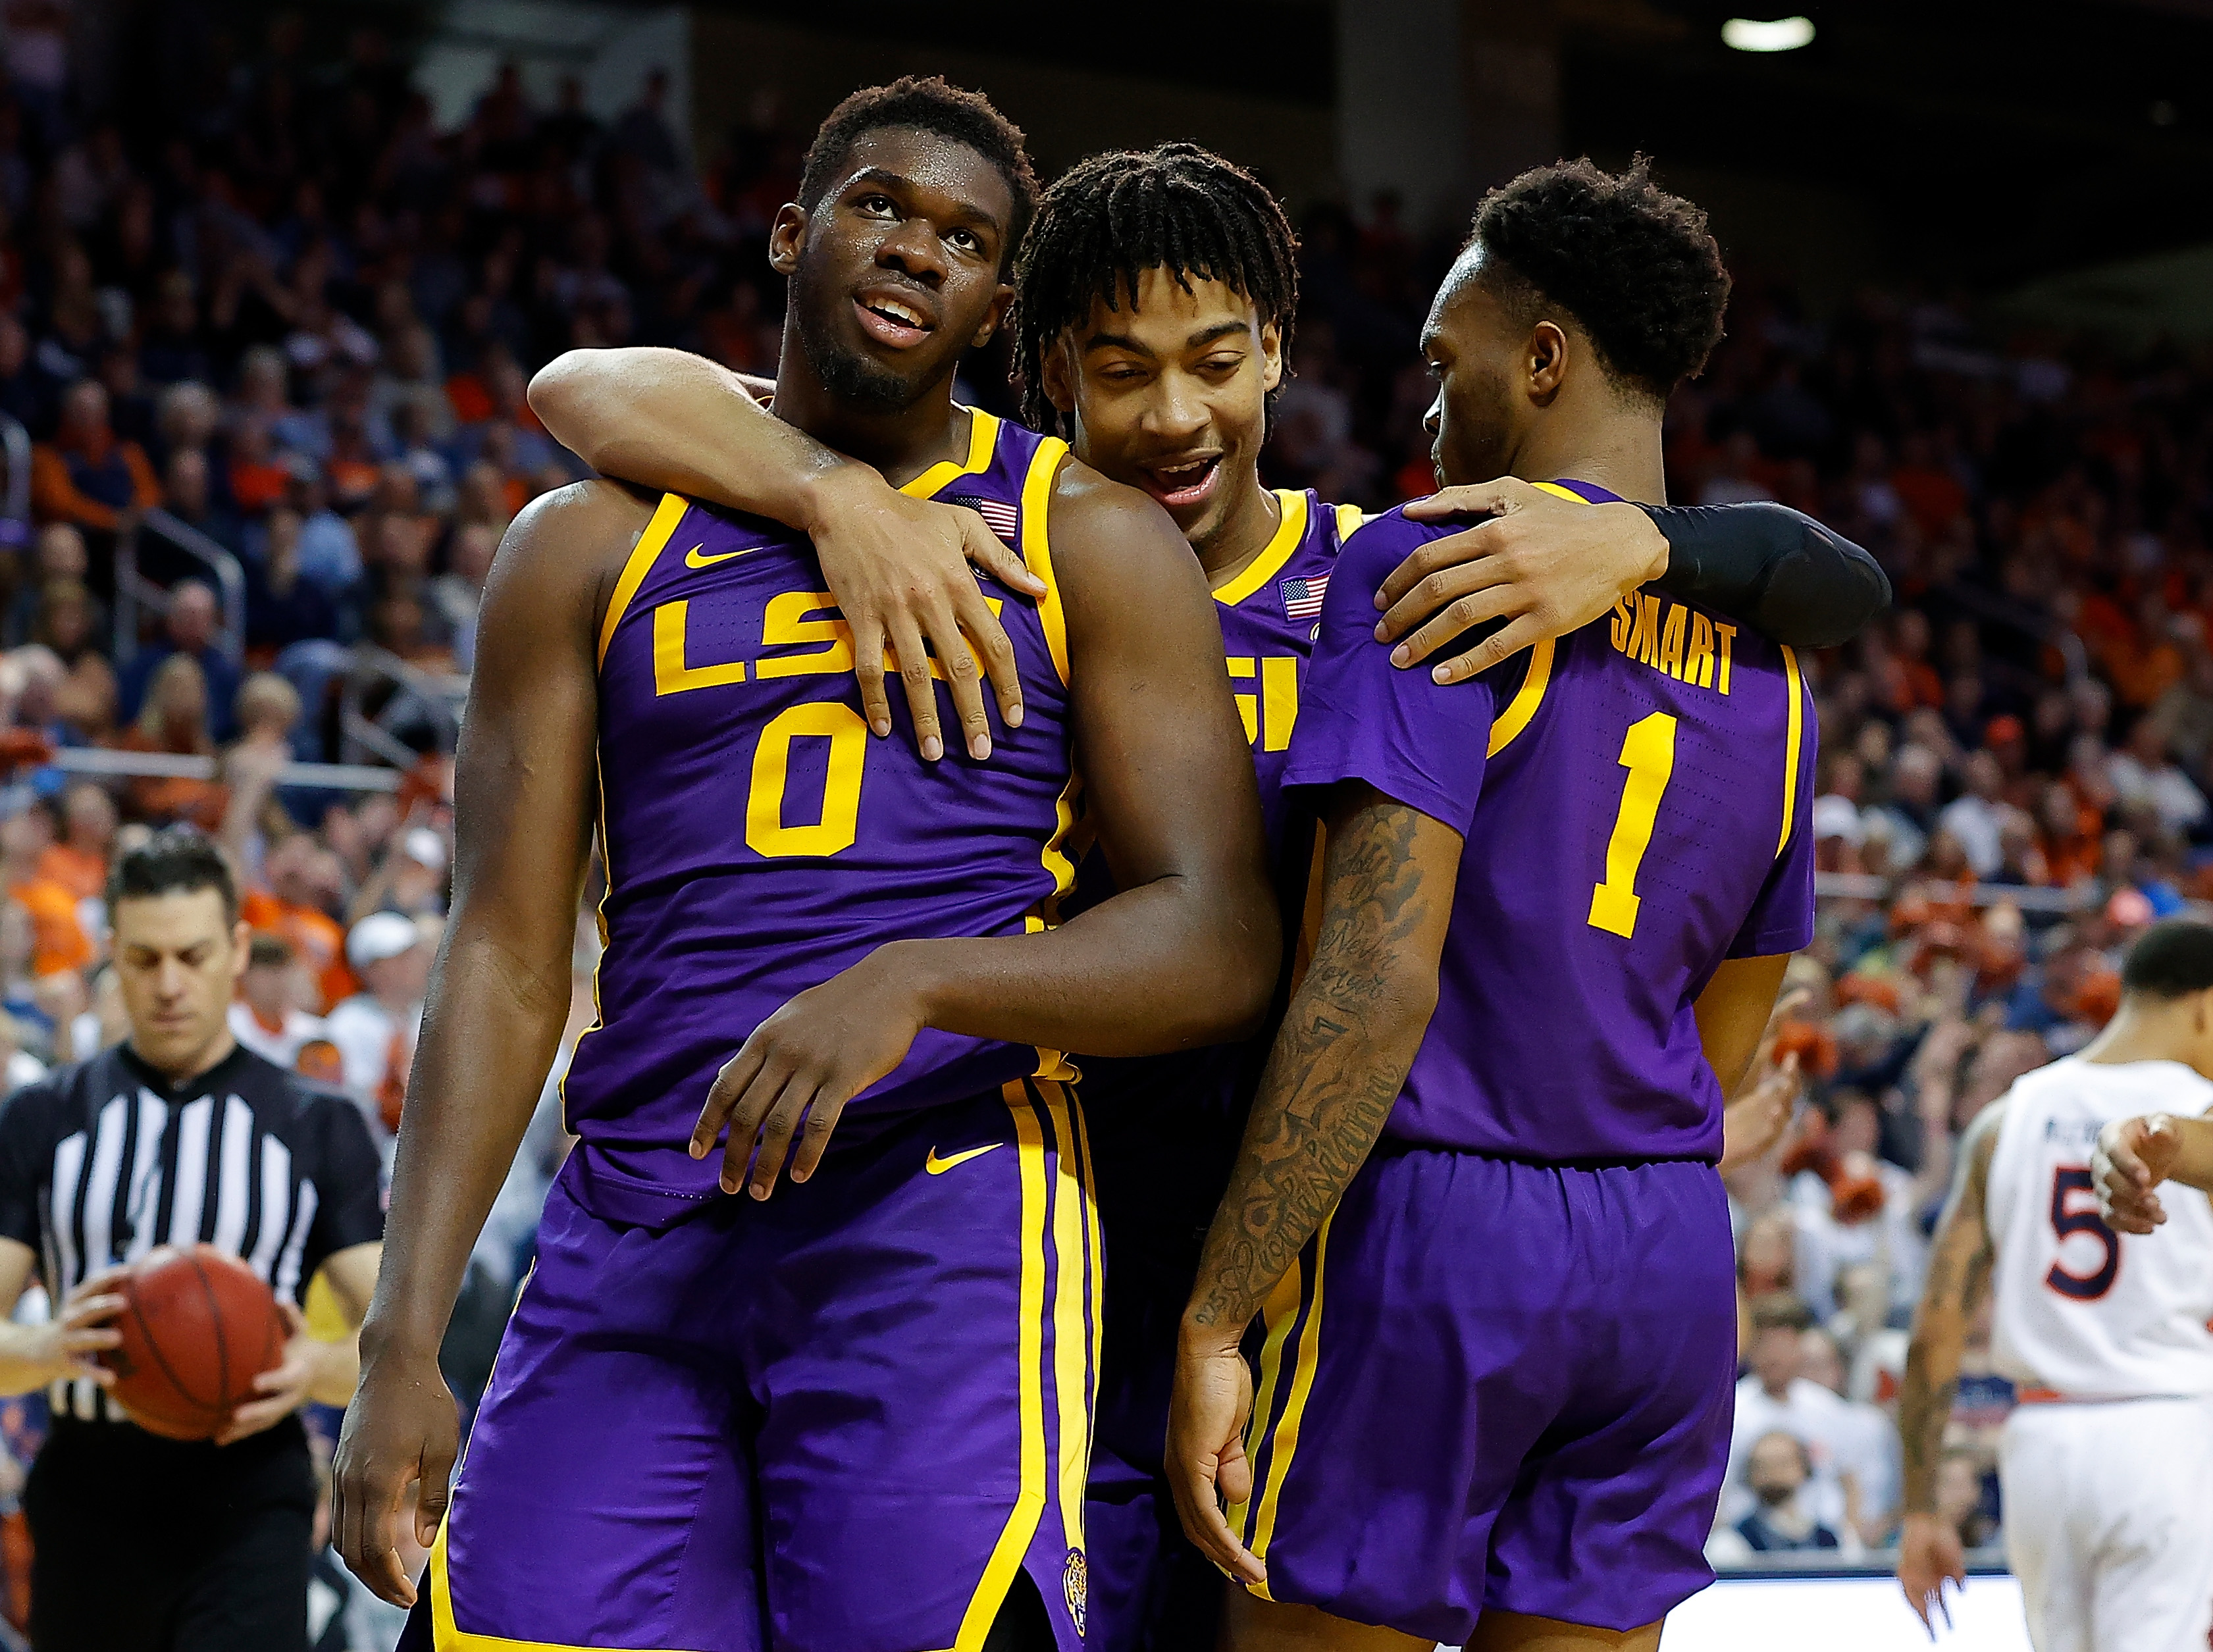 AUBURN, ALABAMA - FEBRUARY 08: Darius Days #0 of the LSU Tigers reacts after fouling out of the game against the Auburn Tigers with Trendon Watford #2 and Javonte Smart #1 at Auburn Arena on February 08, 2020 in Auburn, Alabama.